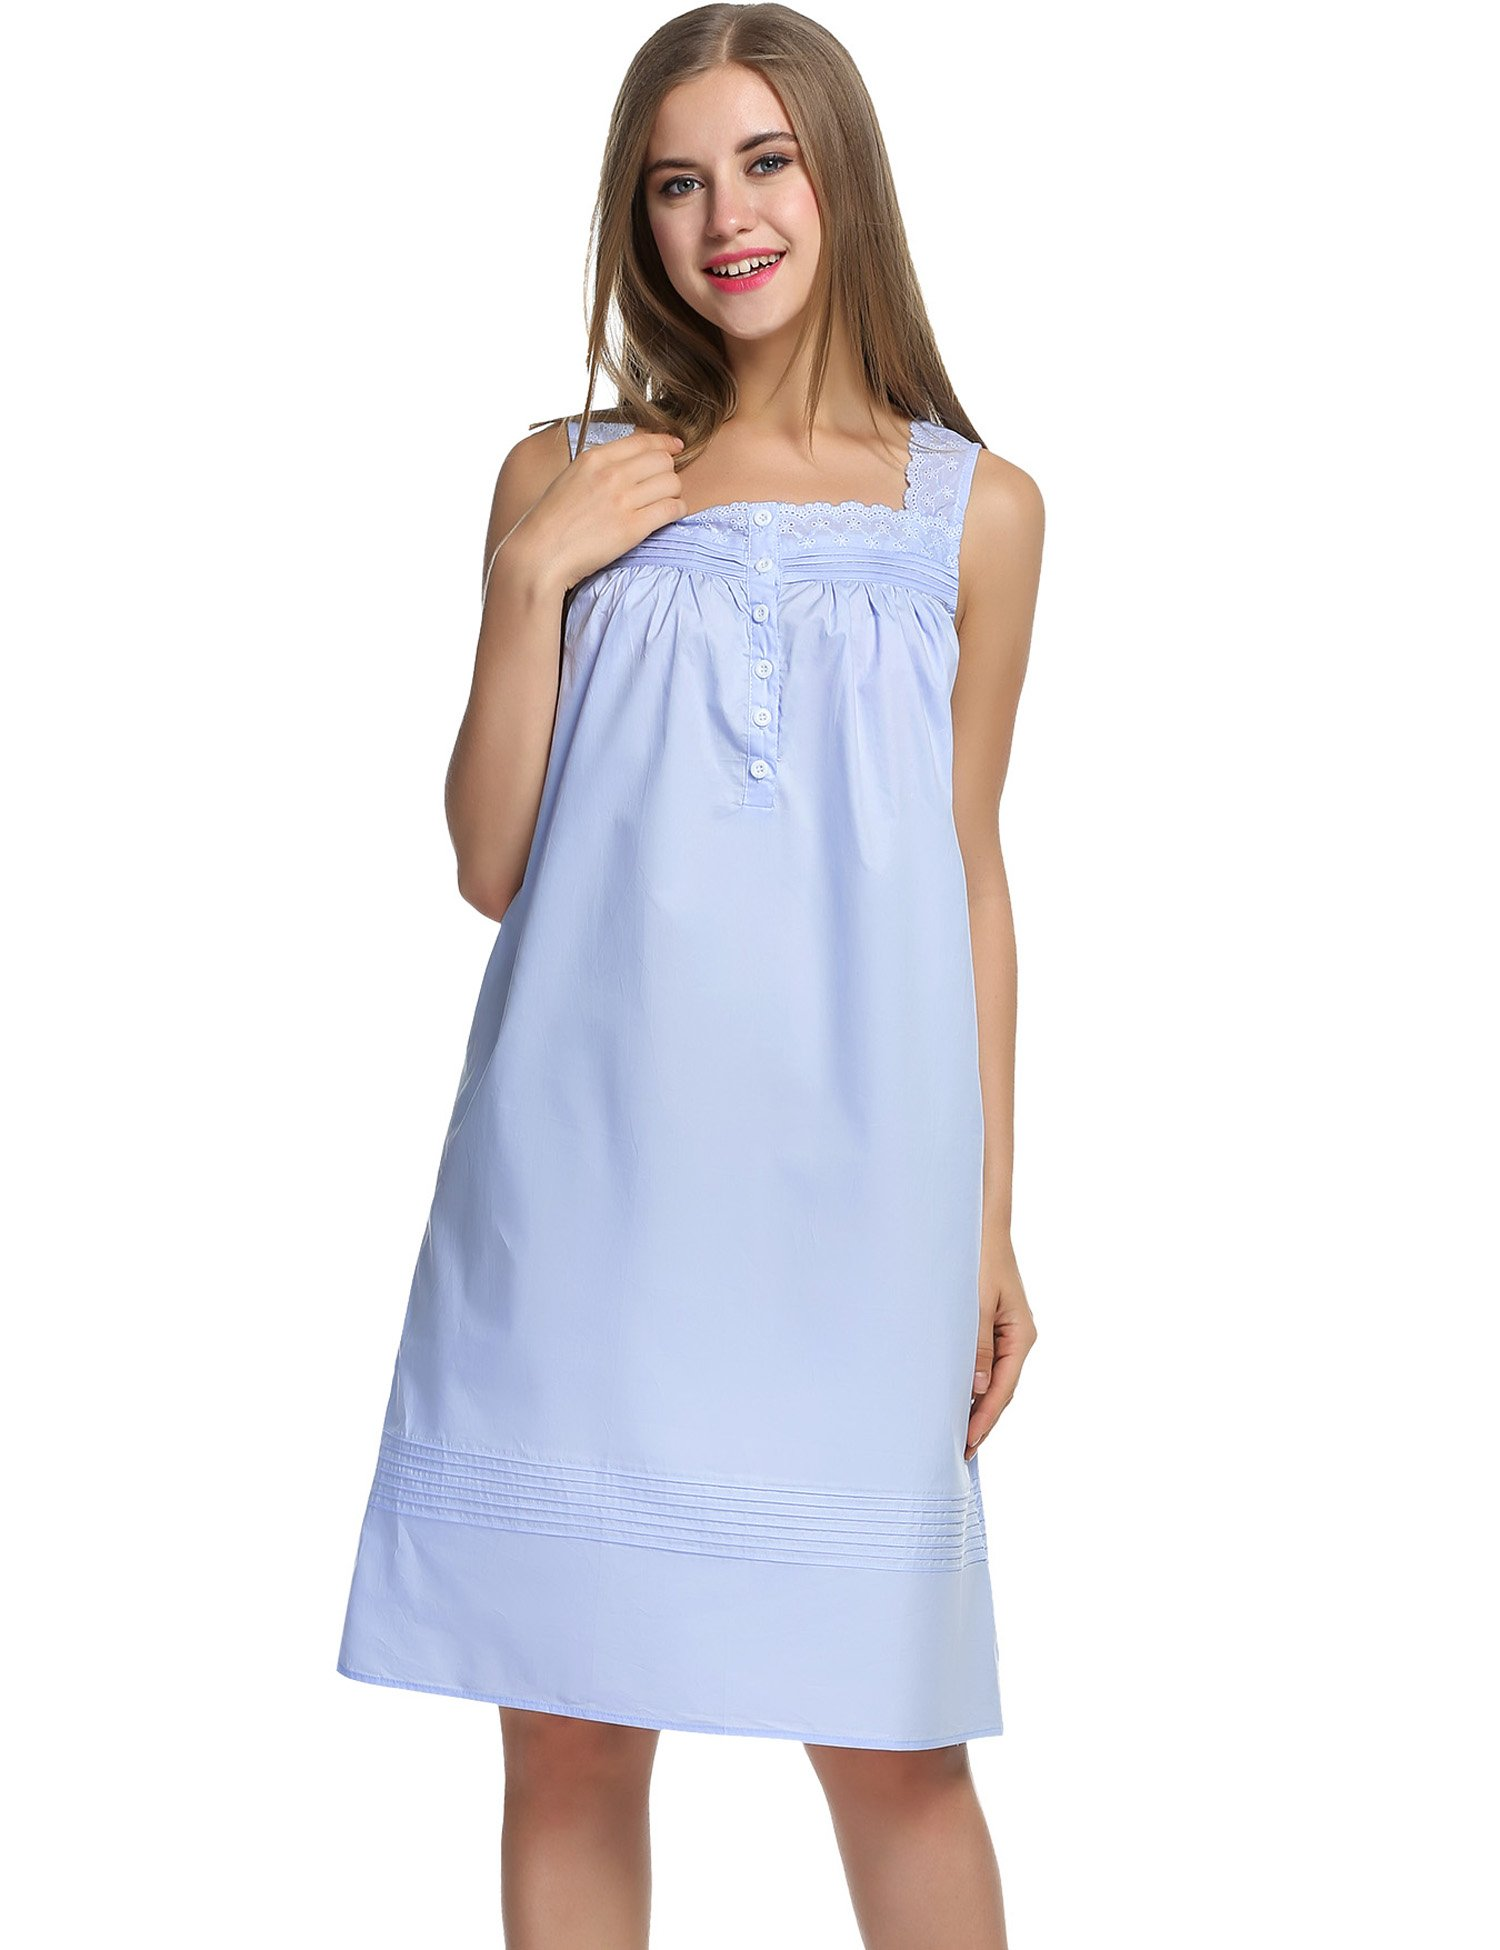 Hotouch Women's Plus-Size Sleep Shirt Lightweight Nightgowns Light Blue L by Hotouch (Image #2)